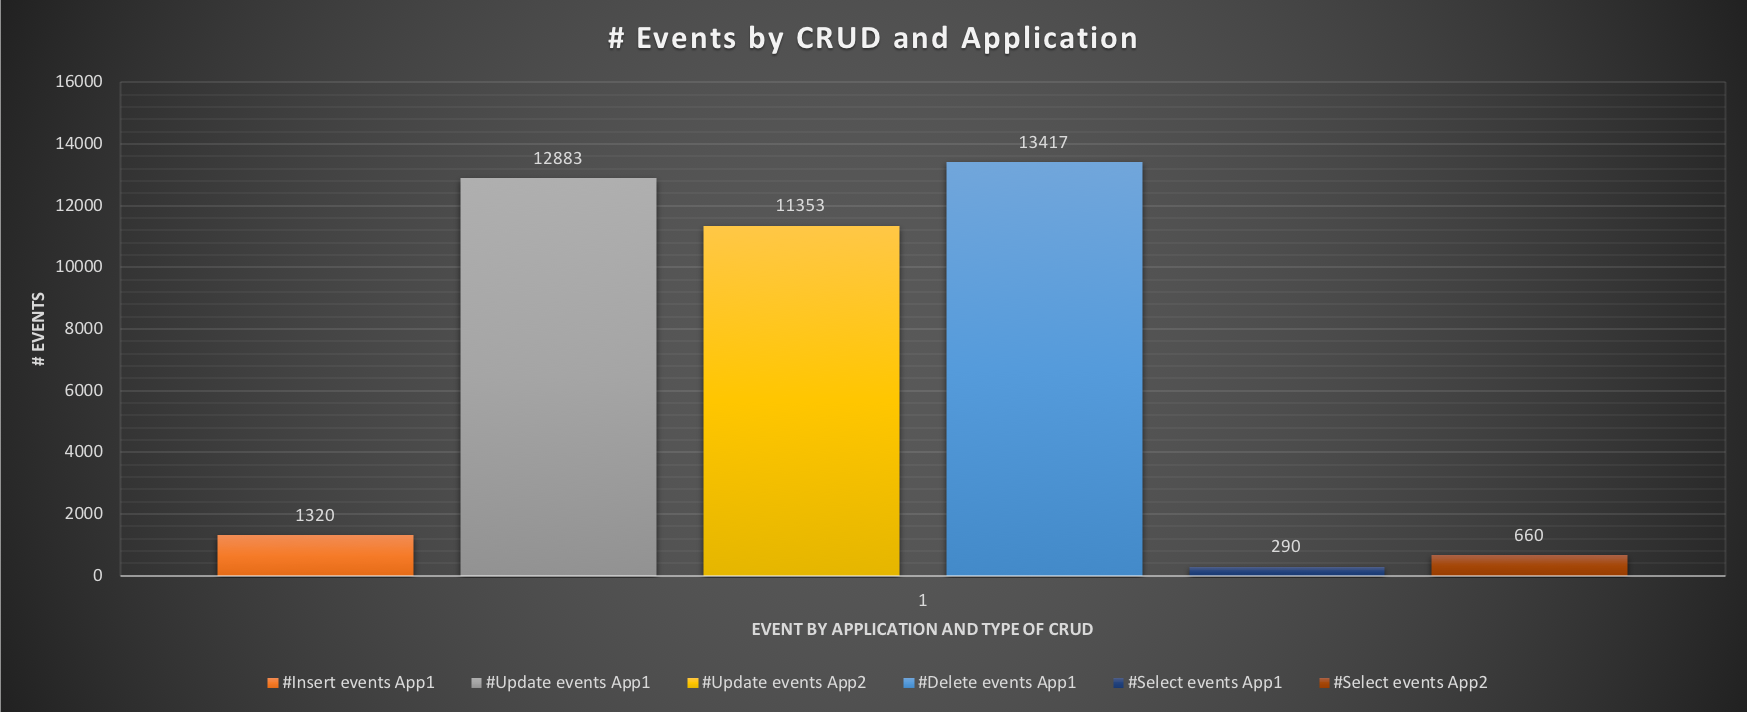 events_by_crud2